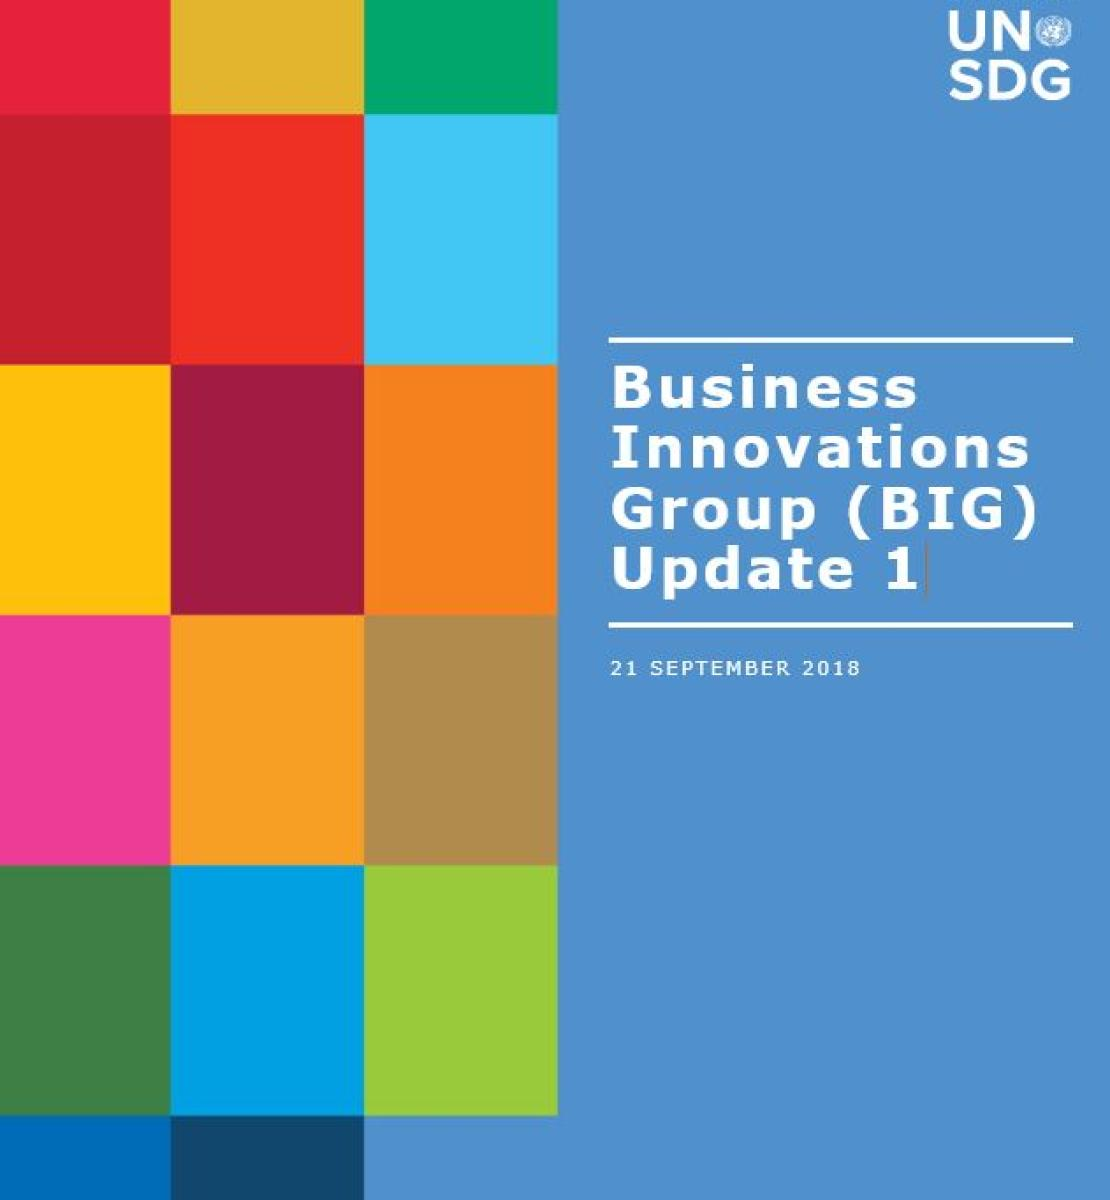 BIG Update 1 covers shows the title against a solid background and colourful grid of rectangles.